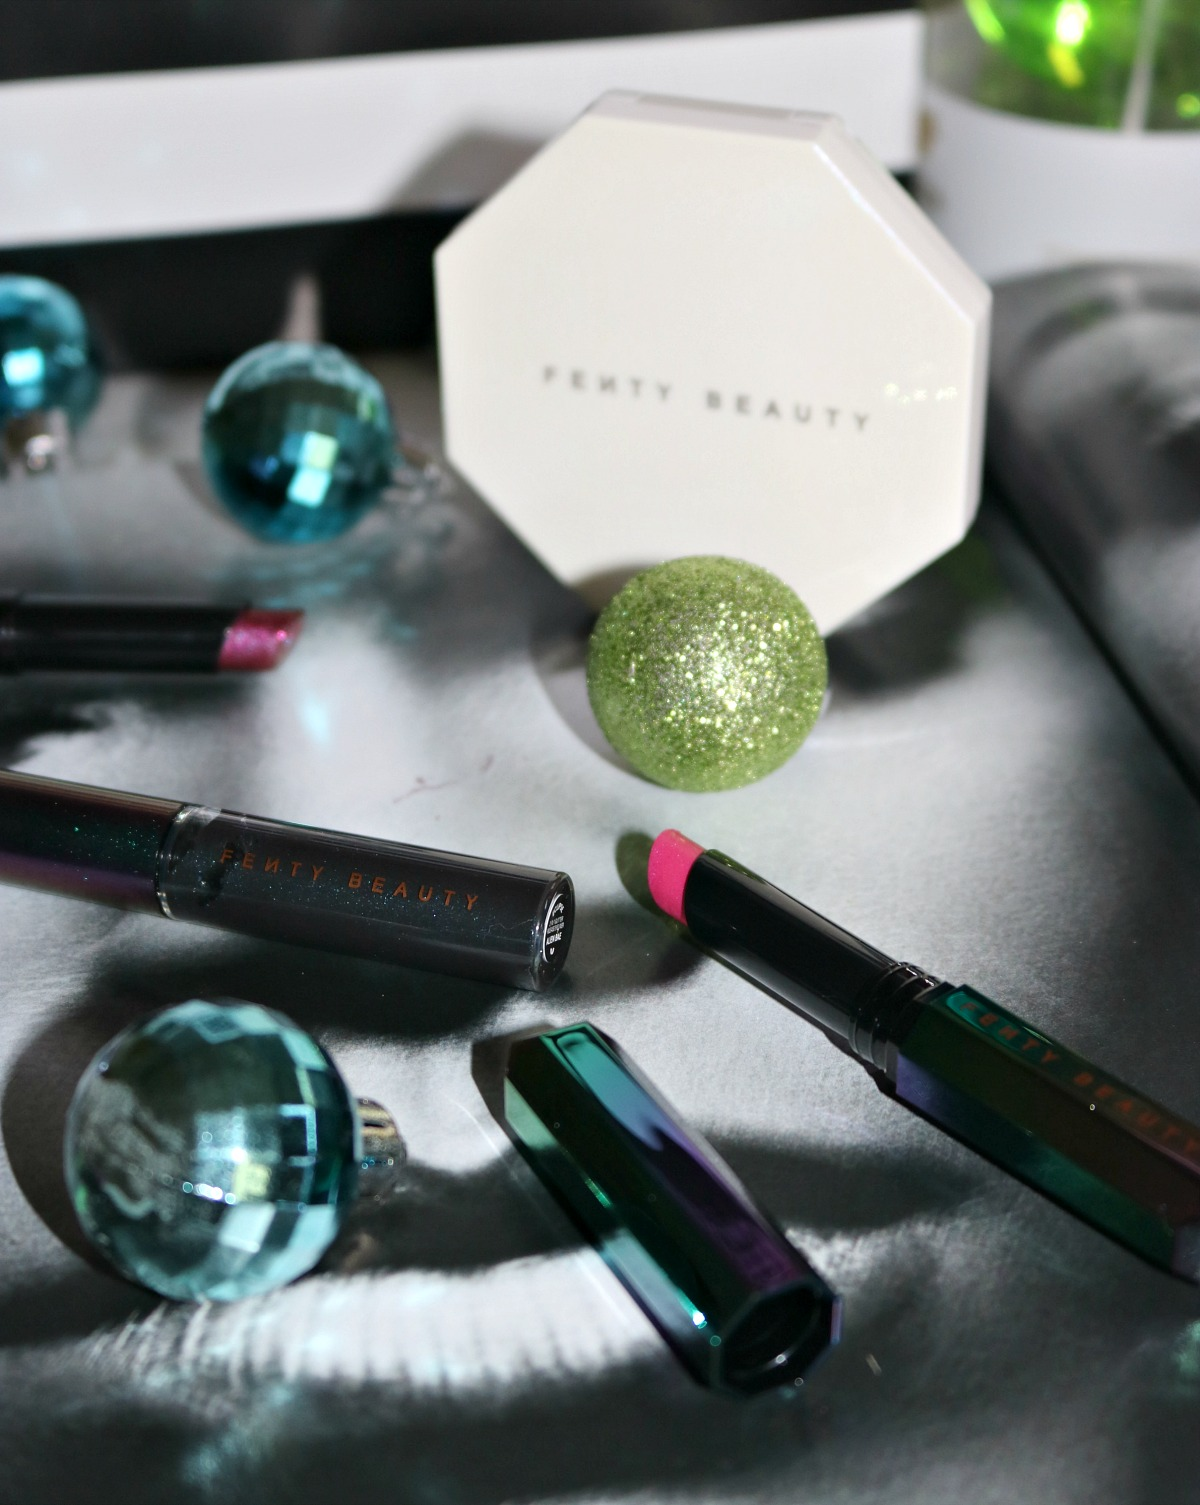 Fenty Beauty Holiday Makeup Collection by Rihanna I DreaminLace.com